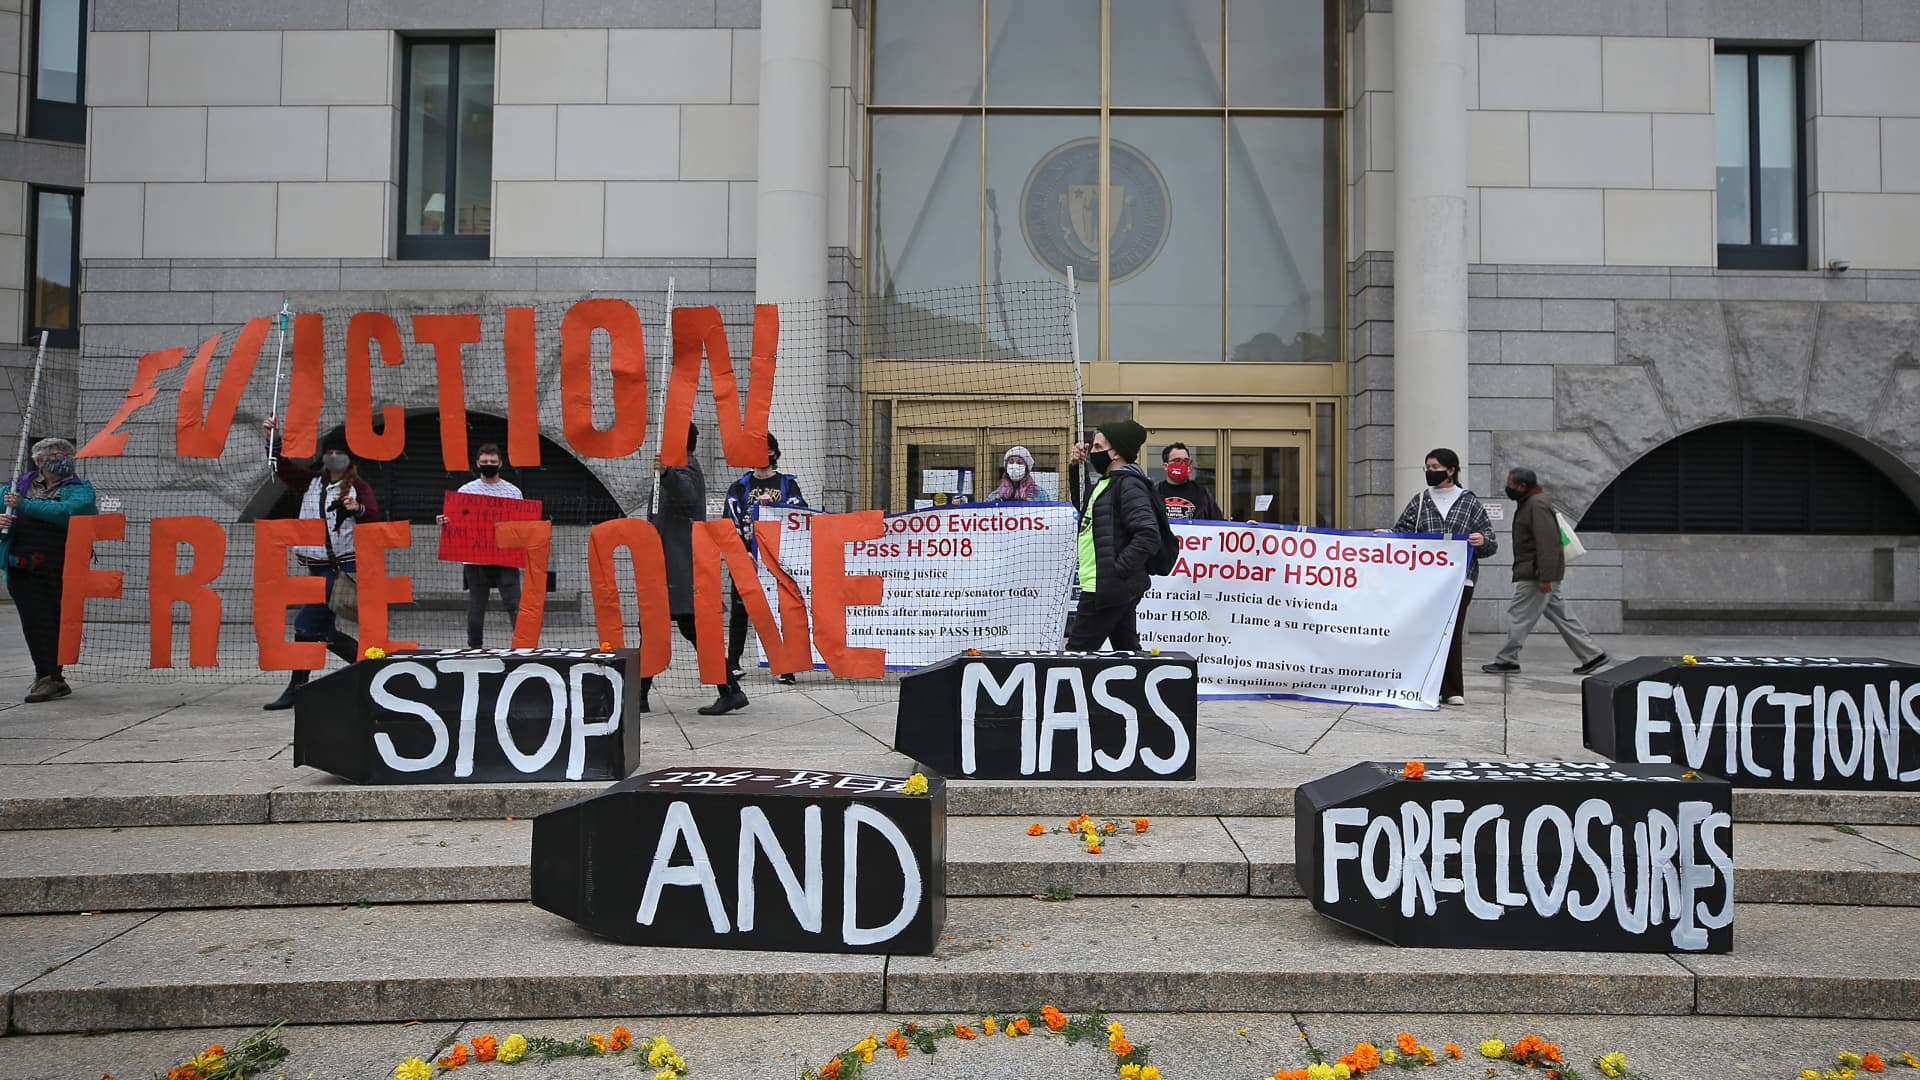 Demonstrators display signs calling for an end to evictions and foreclosures during a rally at Boston Housing Court outside the Edward W. Brooke Courthouse on Oct. 29, 2020.